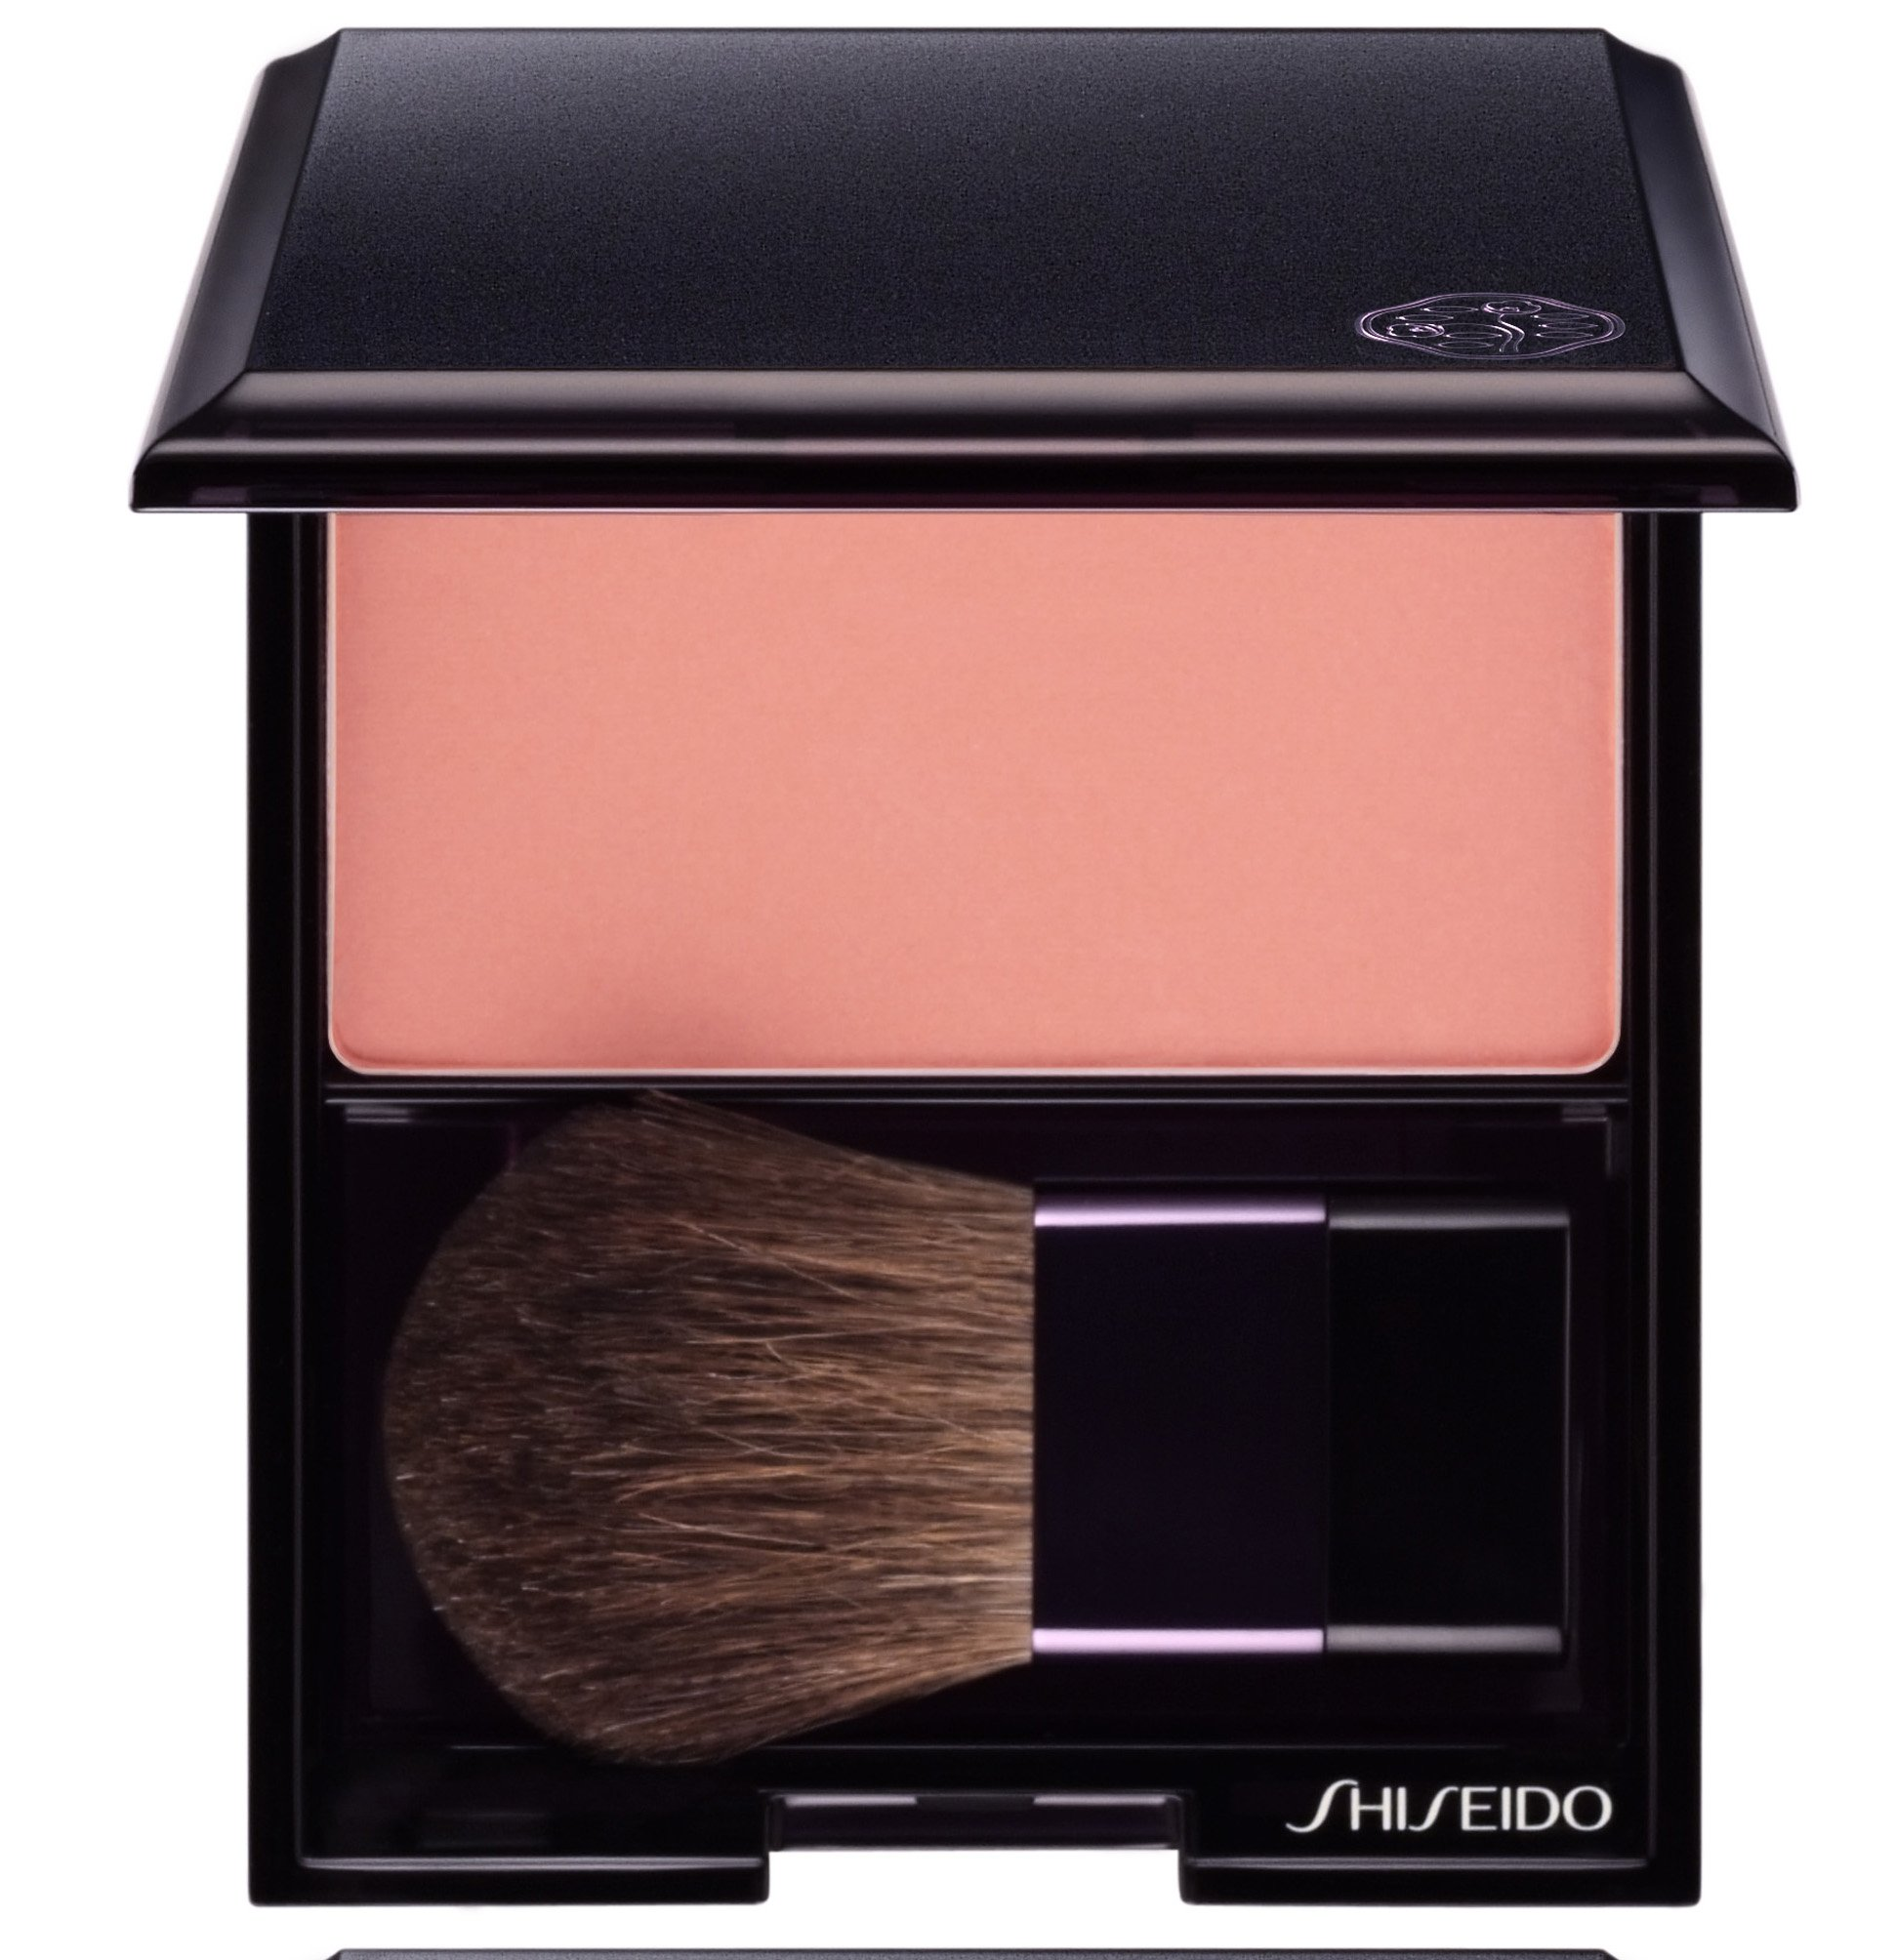 Shiseido Luminizing Satin Face Color, Pk304 Carnation, 0.22 Ounce